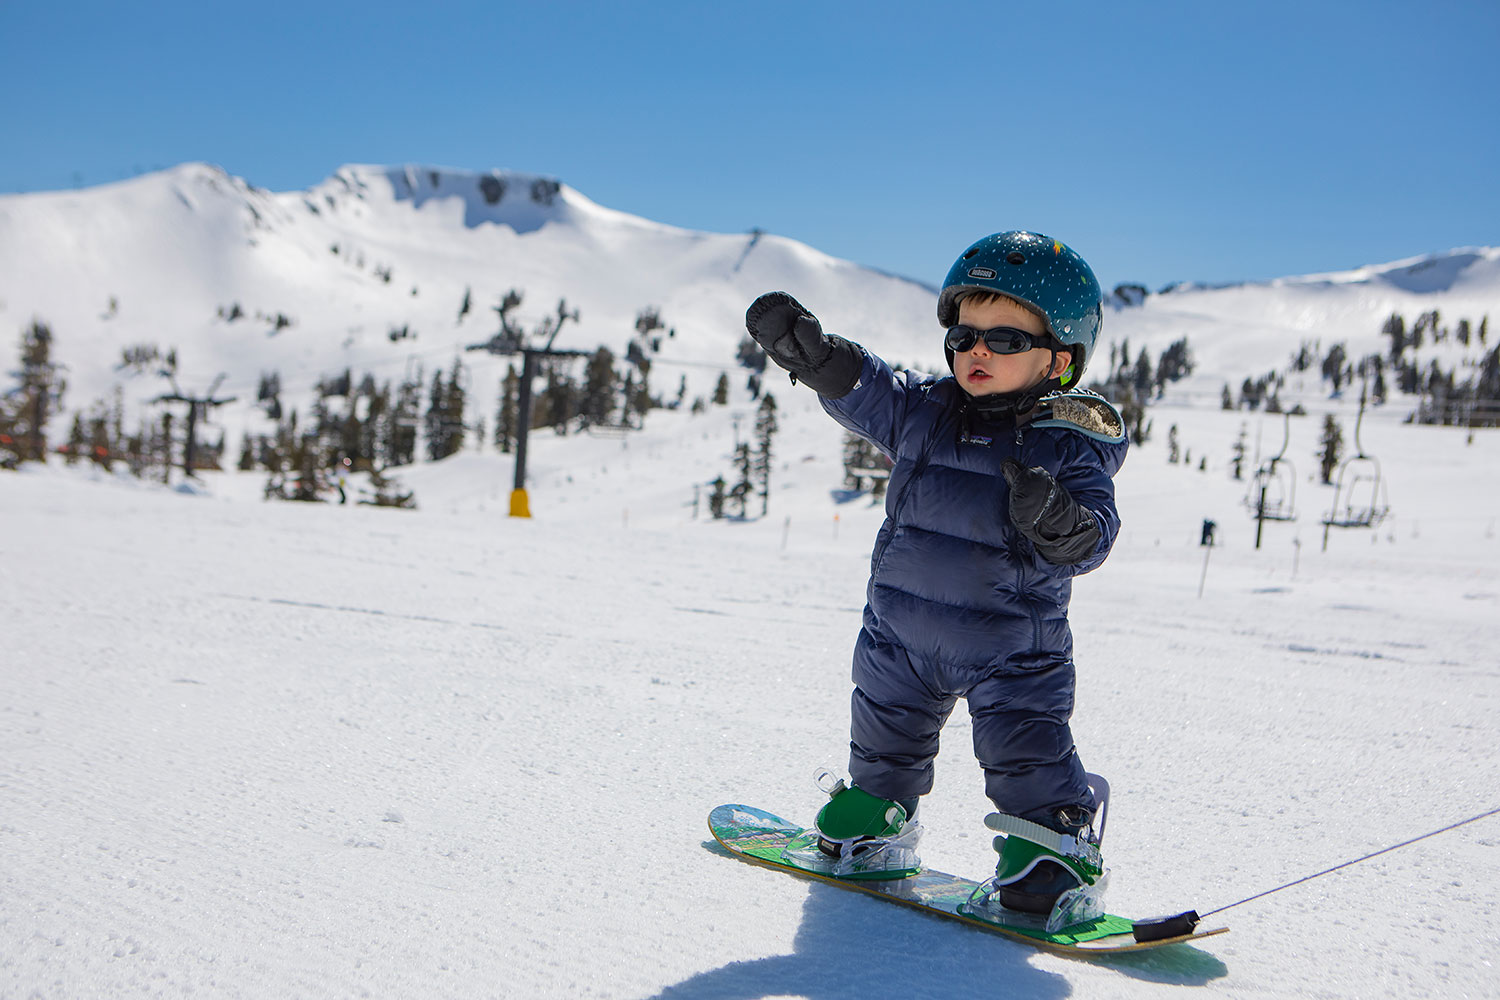 A child learning to snowboard